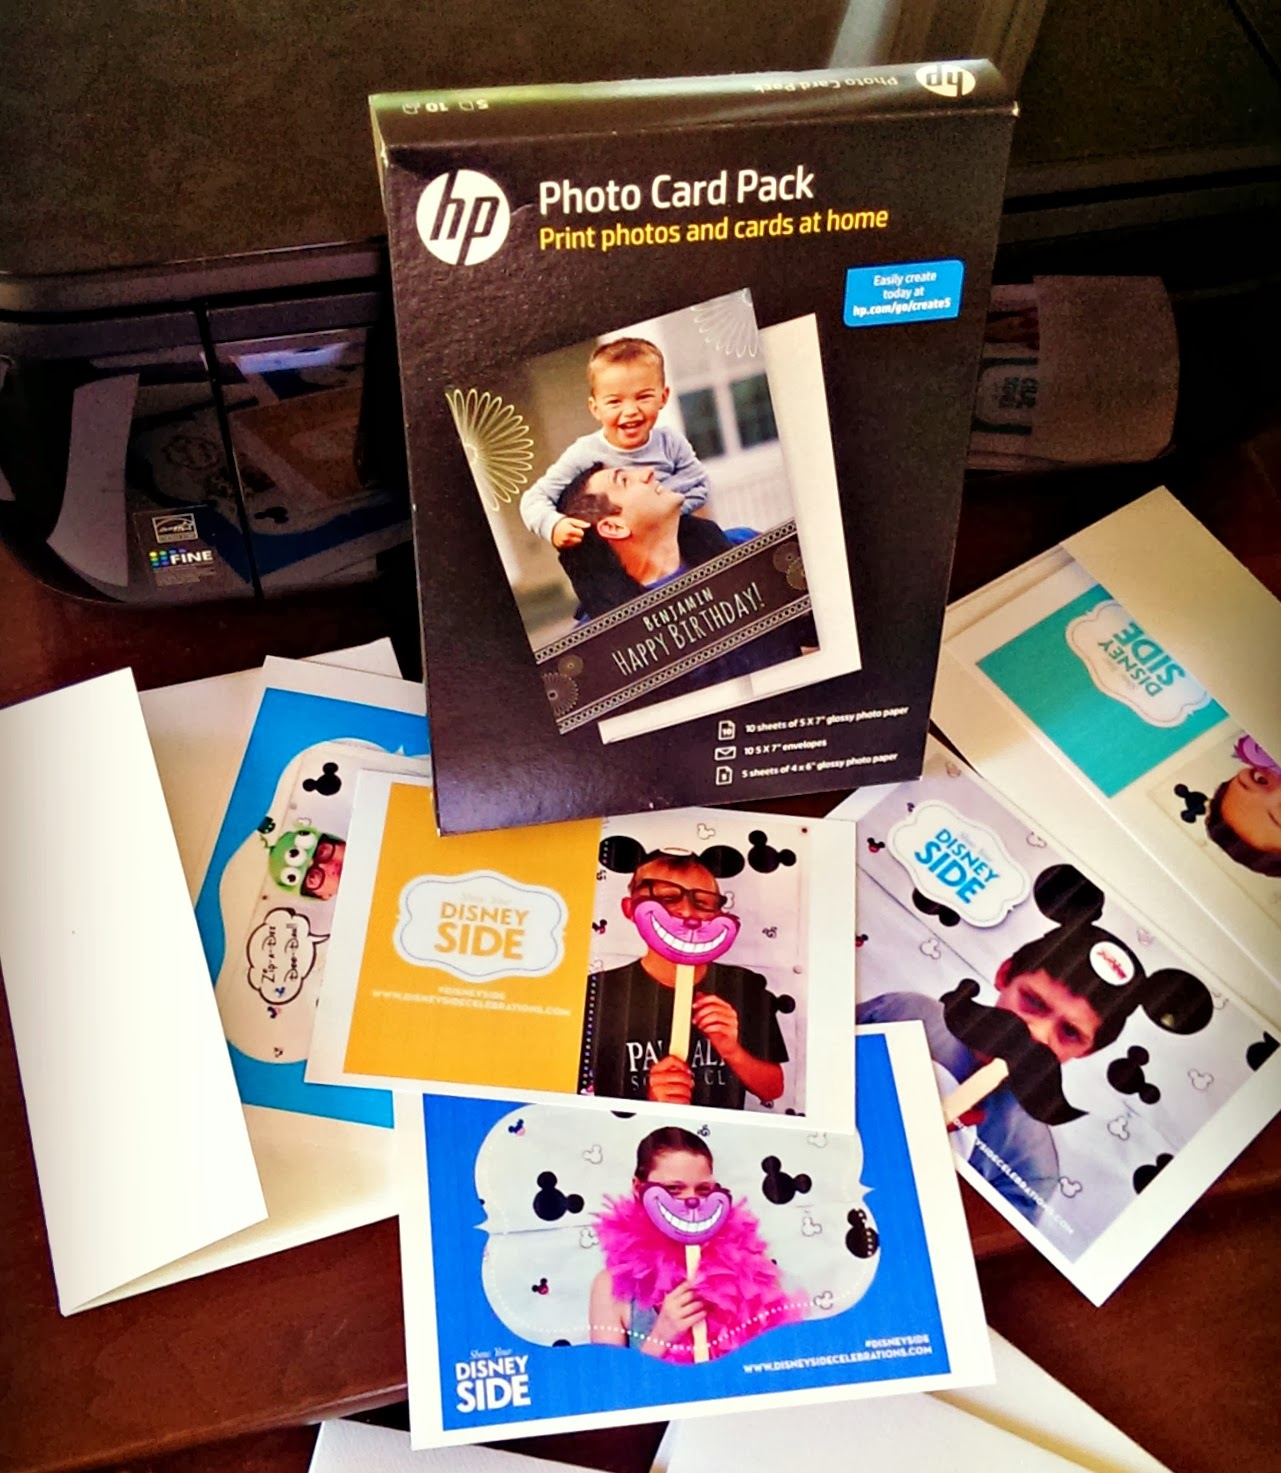 printed DisneySide photo cards from HP